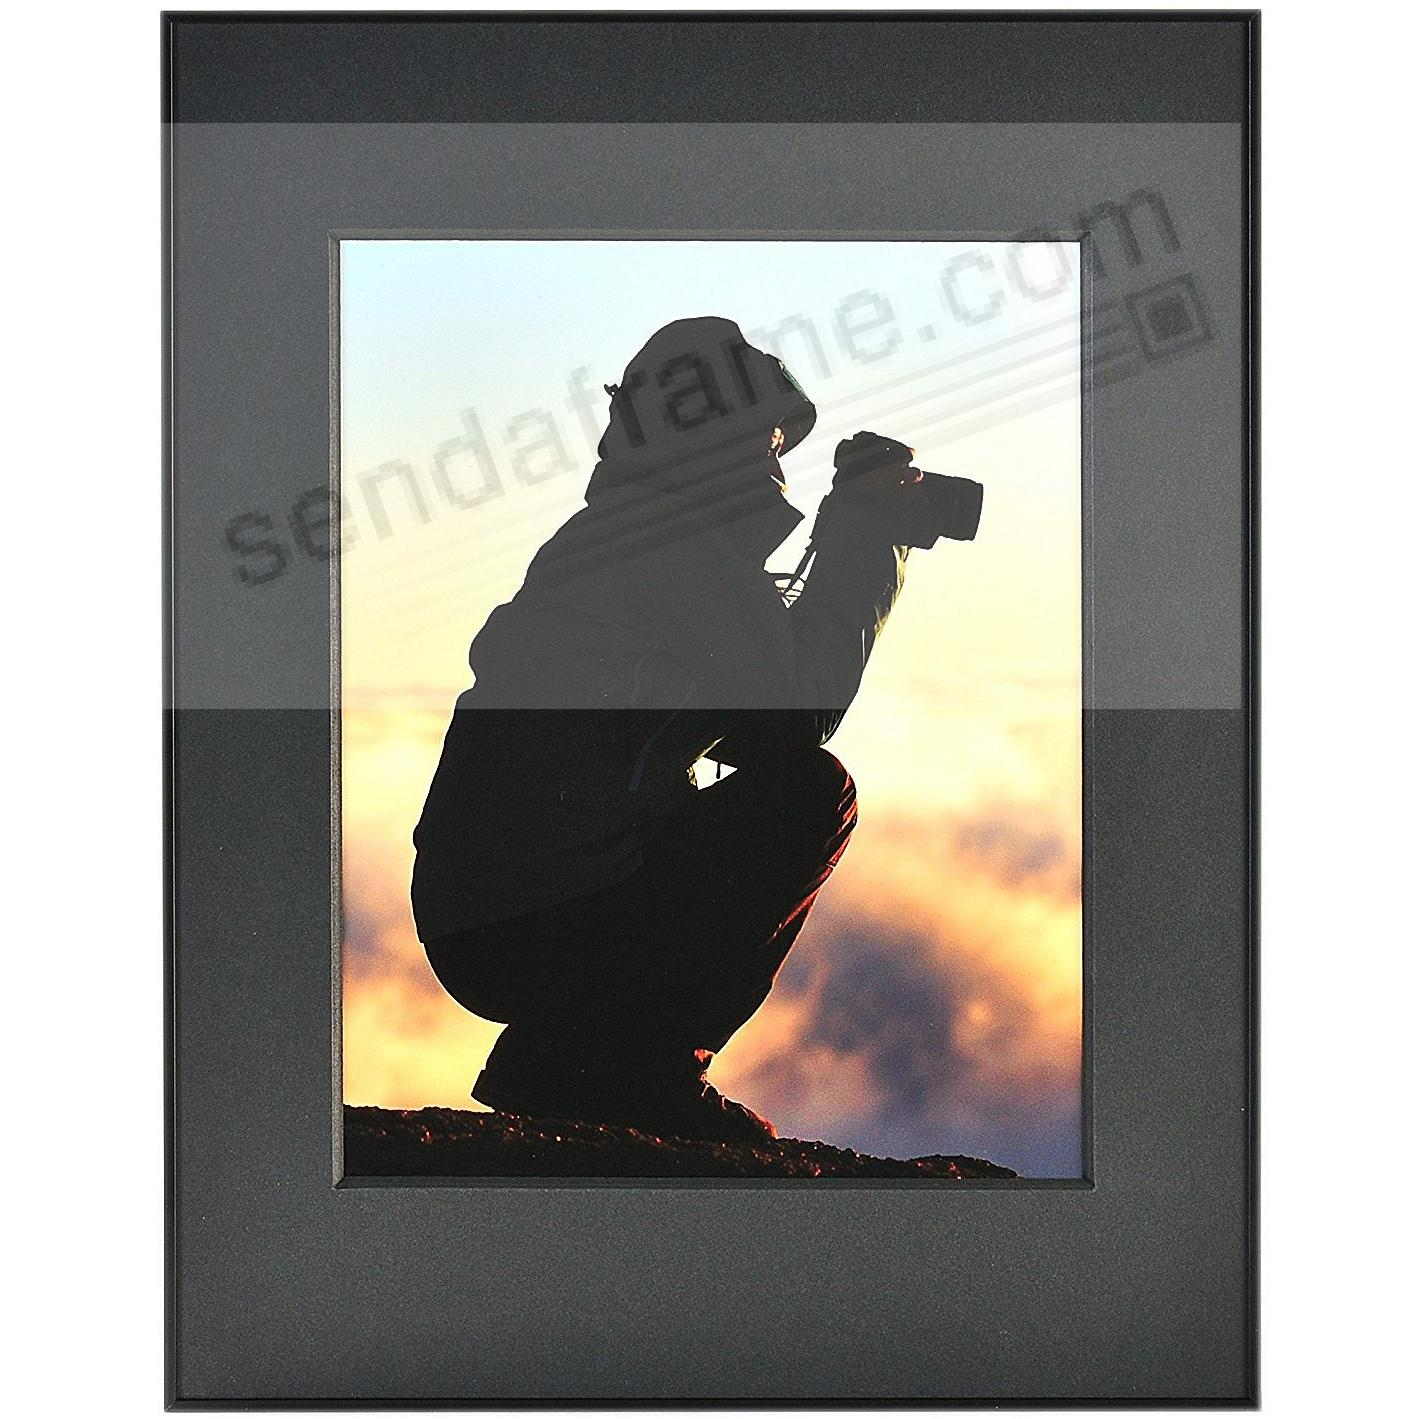 PHOTOGRAPHY Metallic frame MATTE-BLACK/Black Matted 11x14/8x10 by ARTCARE®